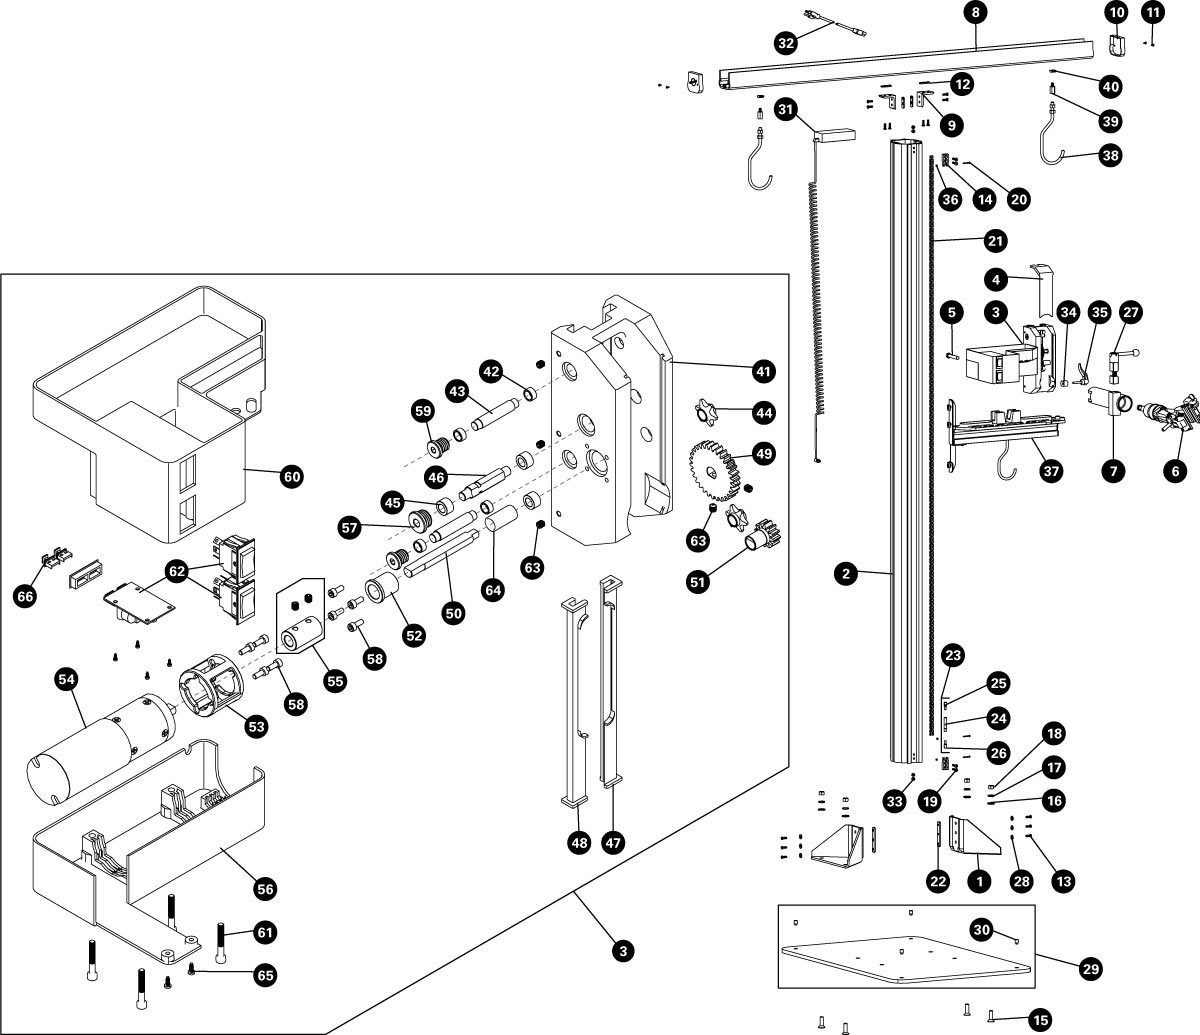 Parts diagram for PRS-33.2 Power Lift Shop Stand, click to enlarge